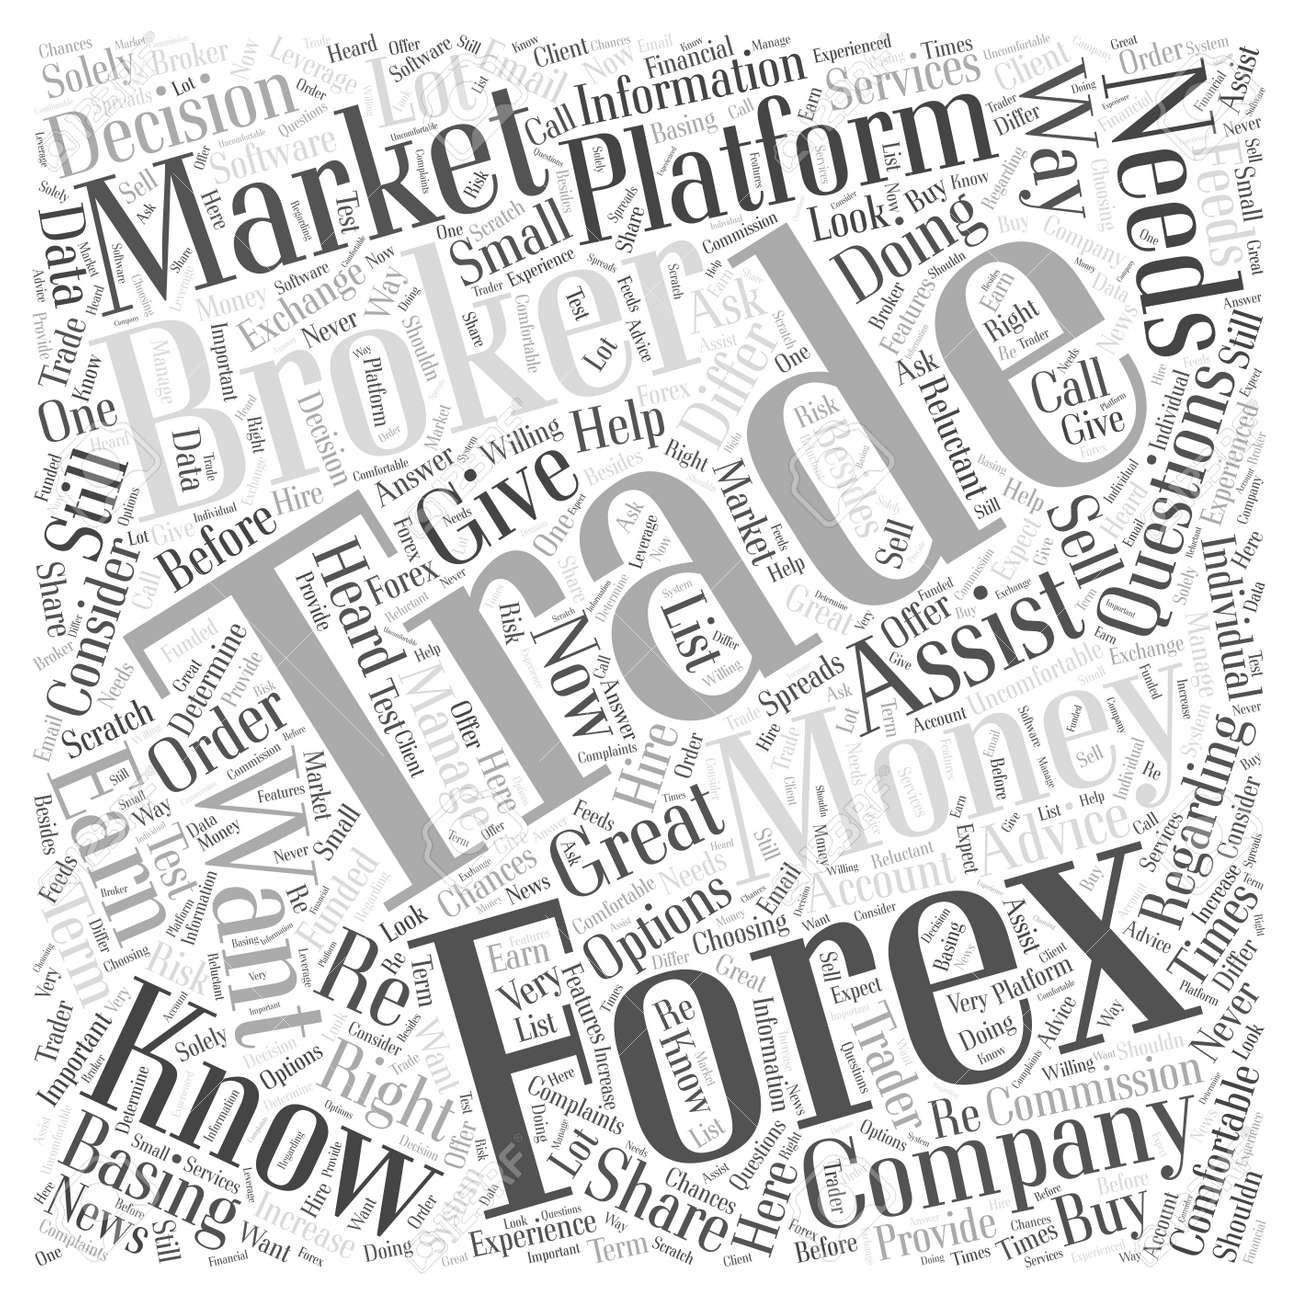 73032874-forex-trading-broker-word-cloud-concept